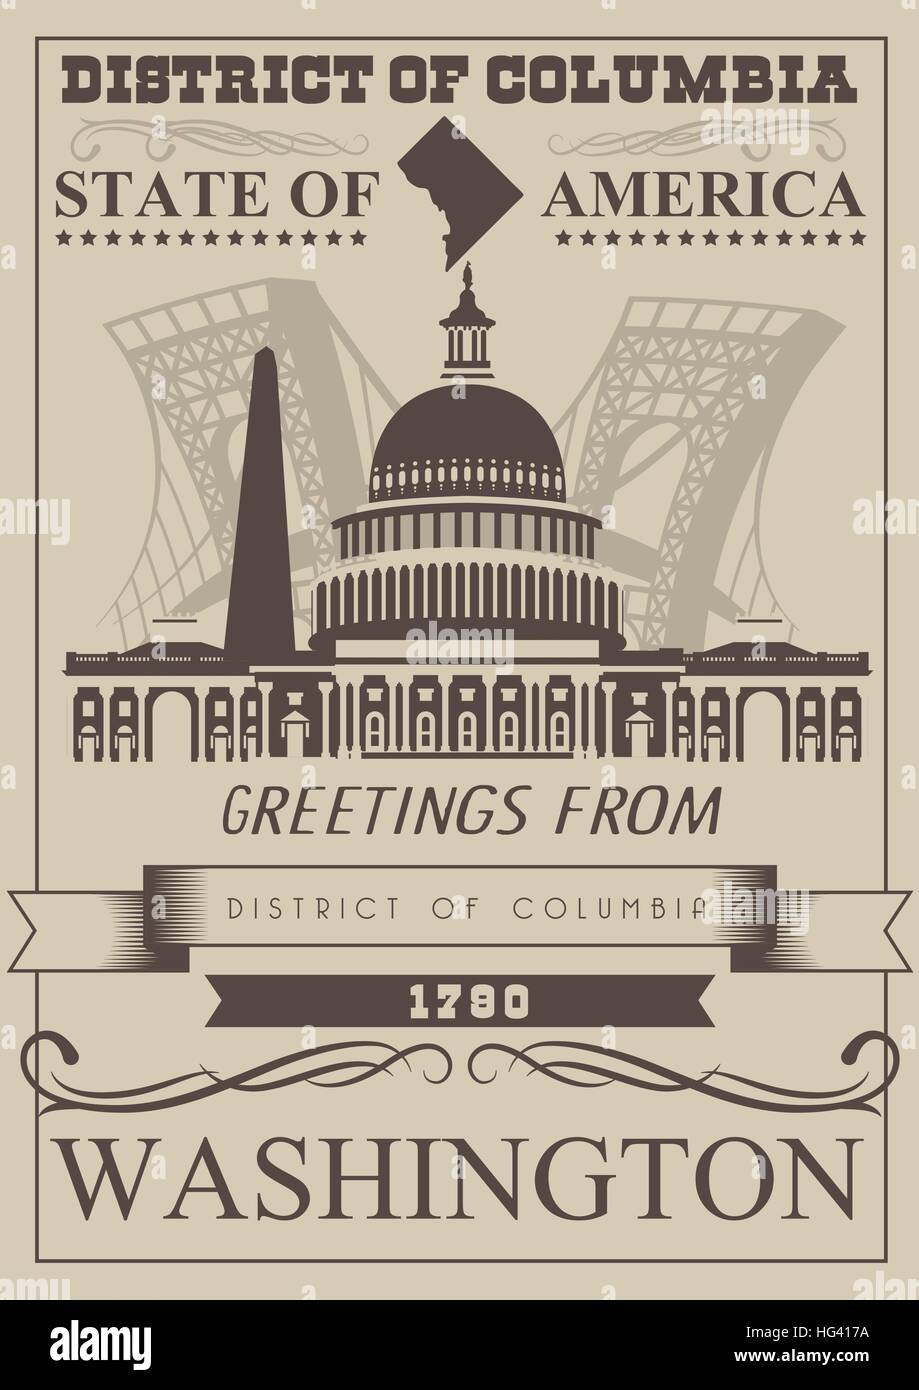 District of columbia vector washington poster usa travel stock district of columbia vector washington poster usa travel illustration united states of america colorful greeting card kristyandbryce Images